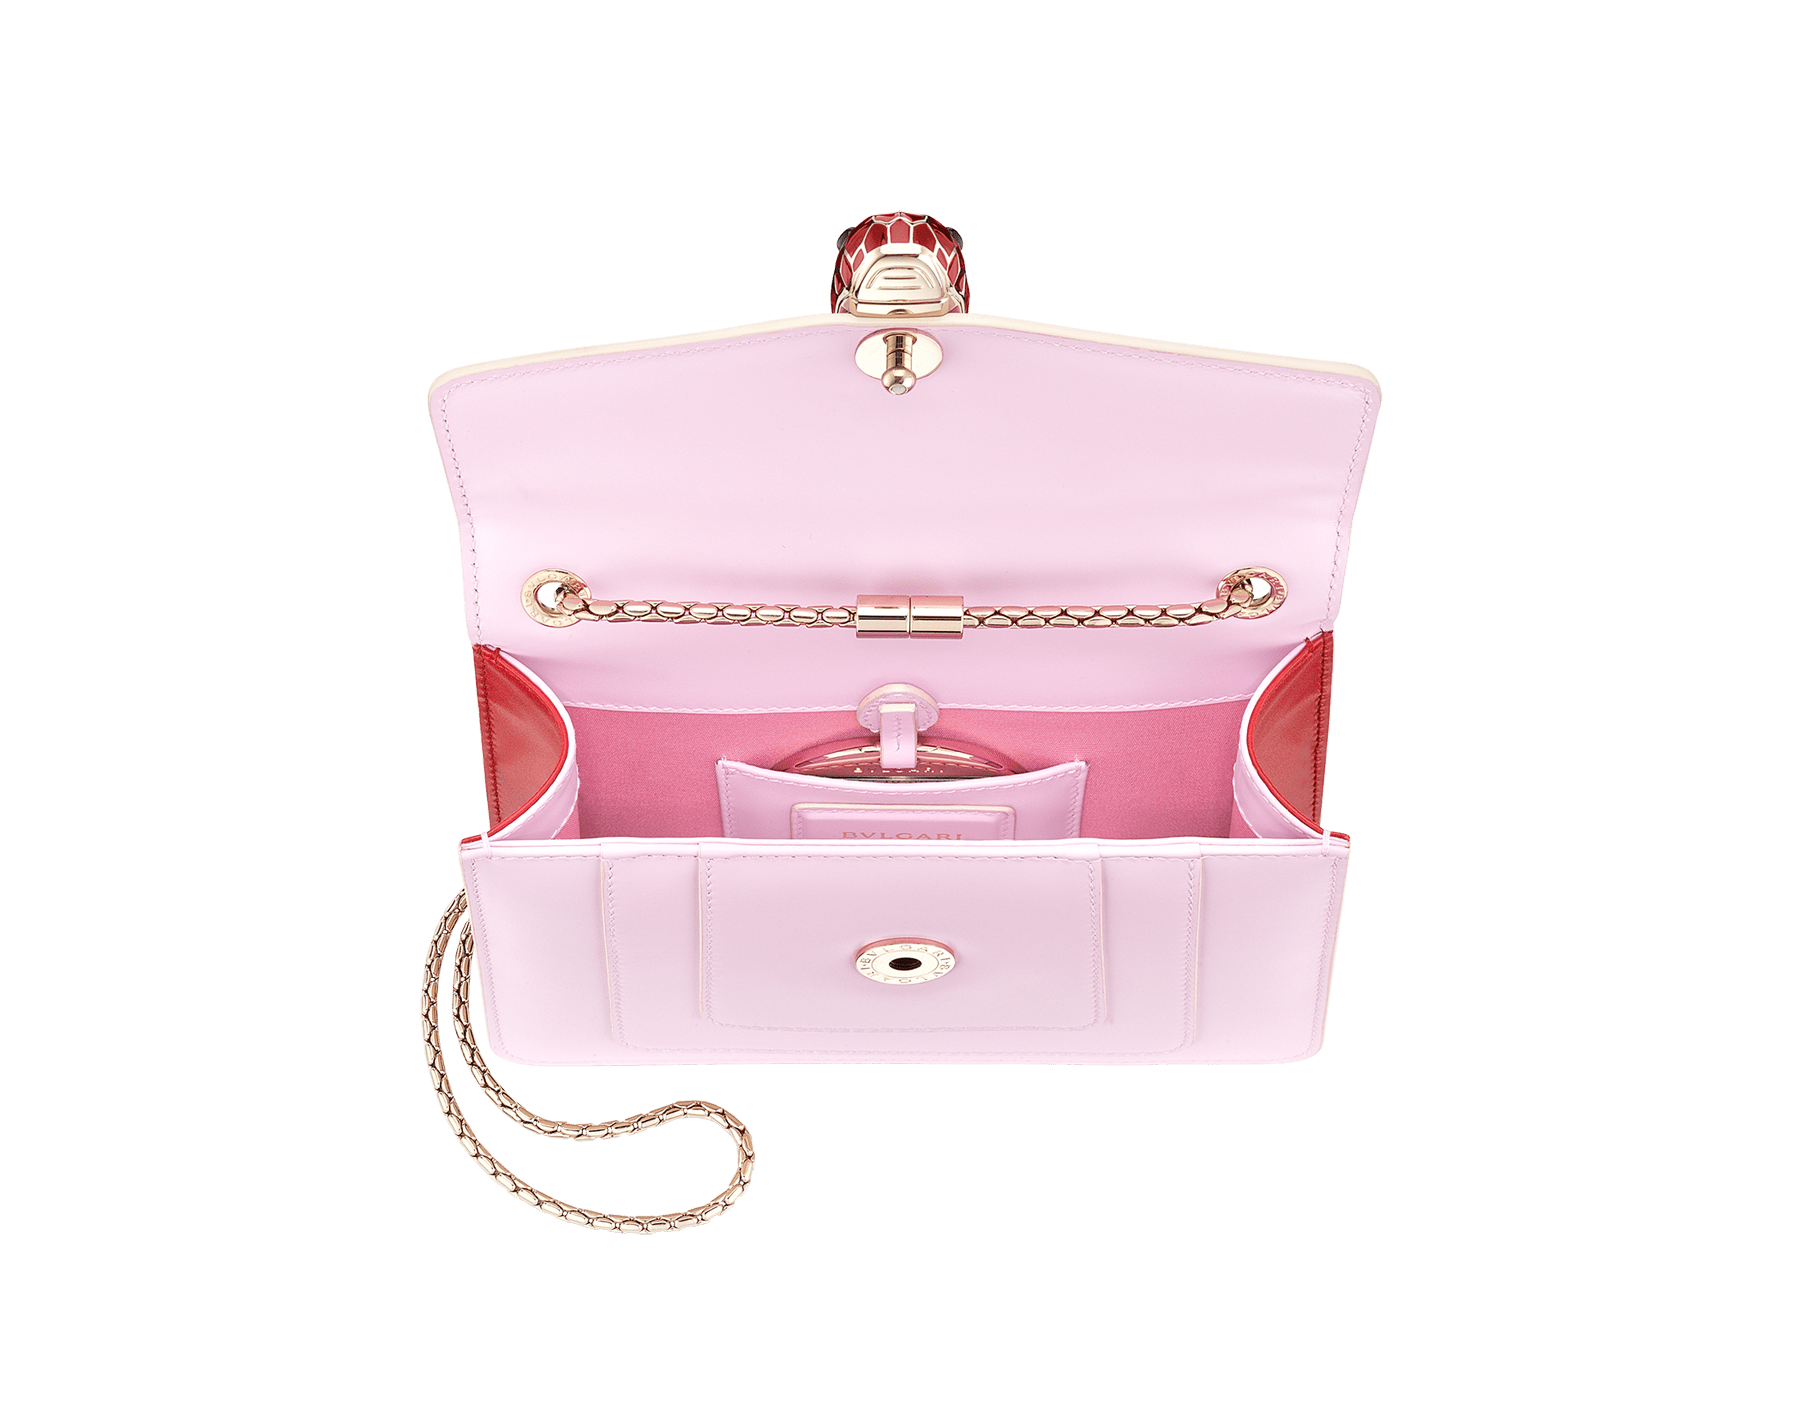 Serpenti Forever crossbody bag in sea star coral smooth calf leather body and milky opal calf leather sides. Snakehead closure in light gold plated brass decorated with milky opal and black enamel, and black onyx eyes. 422-BCLa image 4